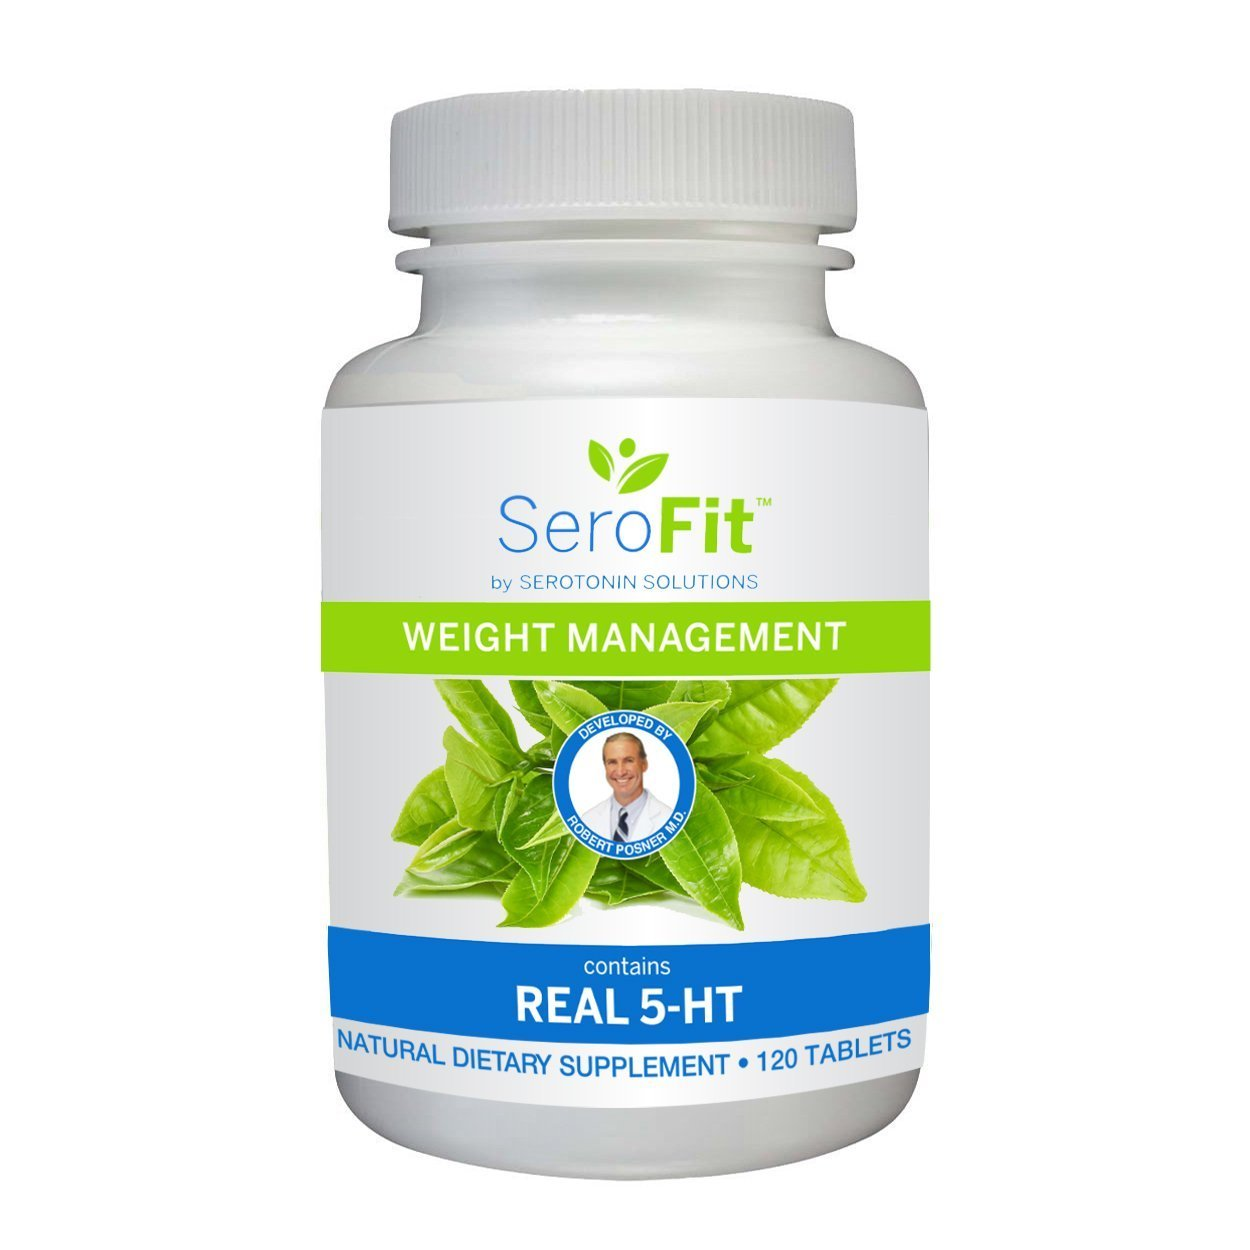 SeroFit Serotonin Weight Management Supplement with REAL 5-HT - Effective Weight Loss and Appetite Suppressant for Men and Women (120 Caplets) by SEROFIT